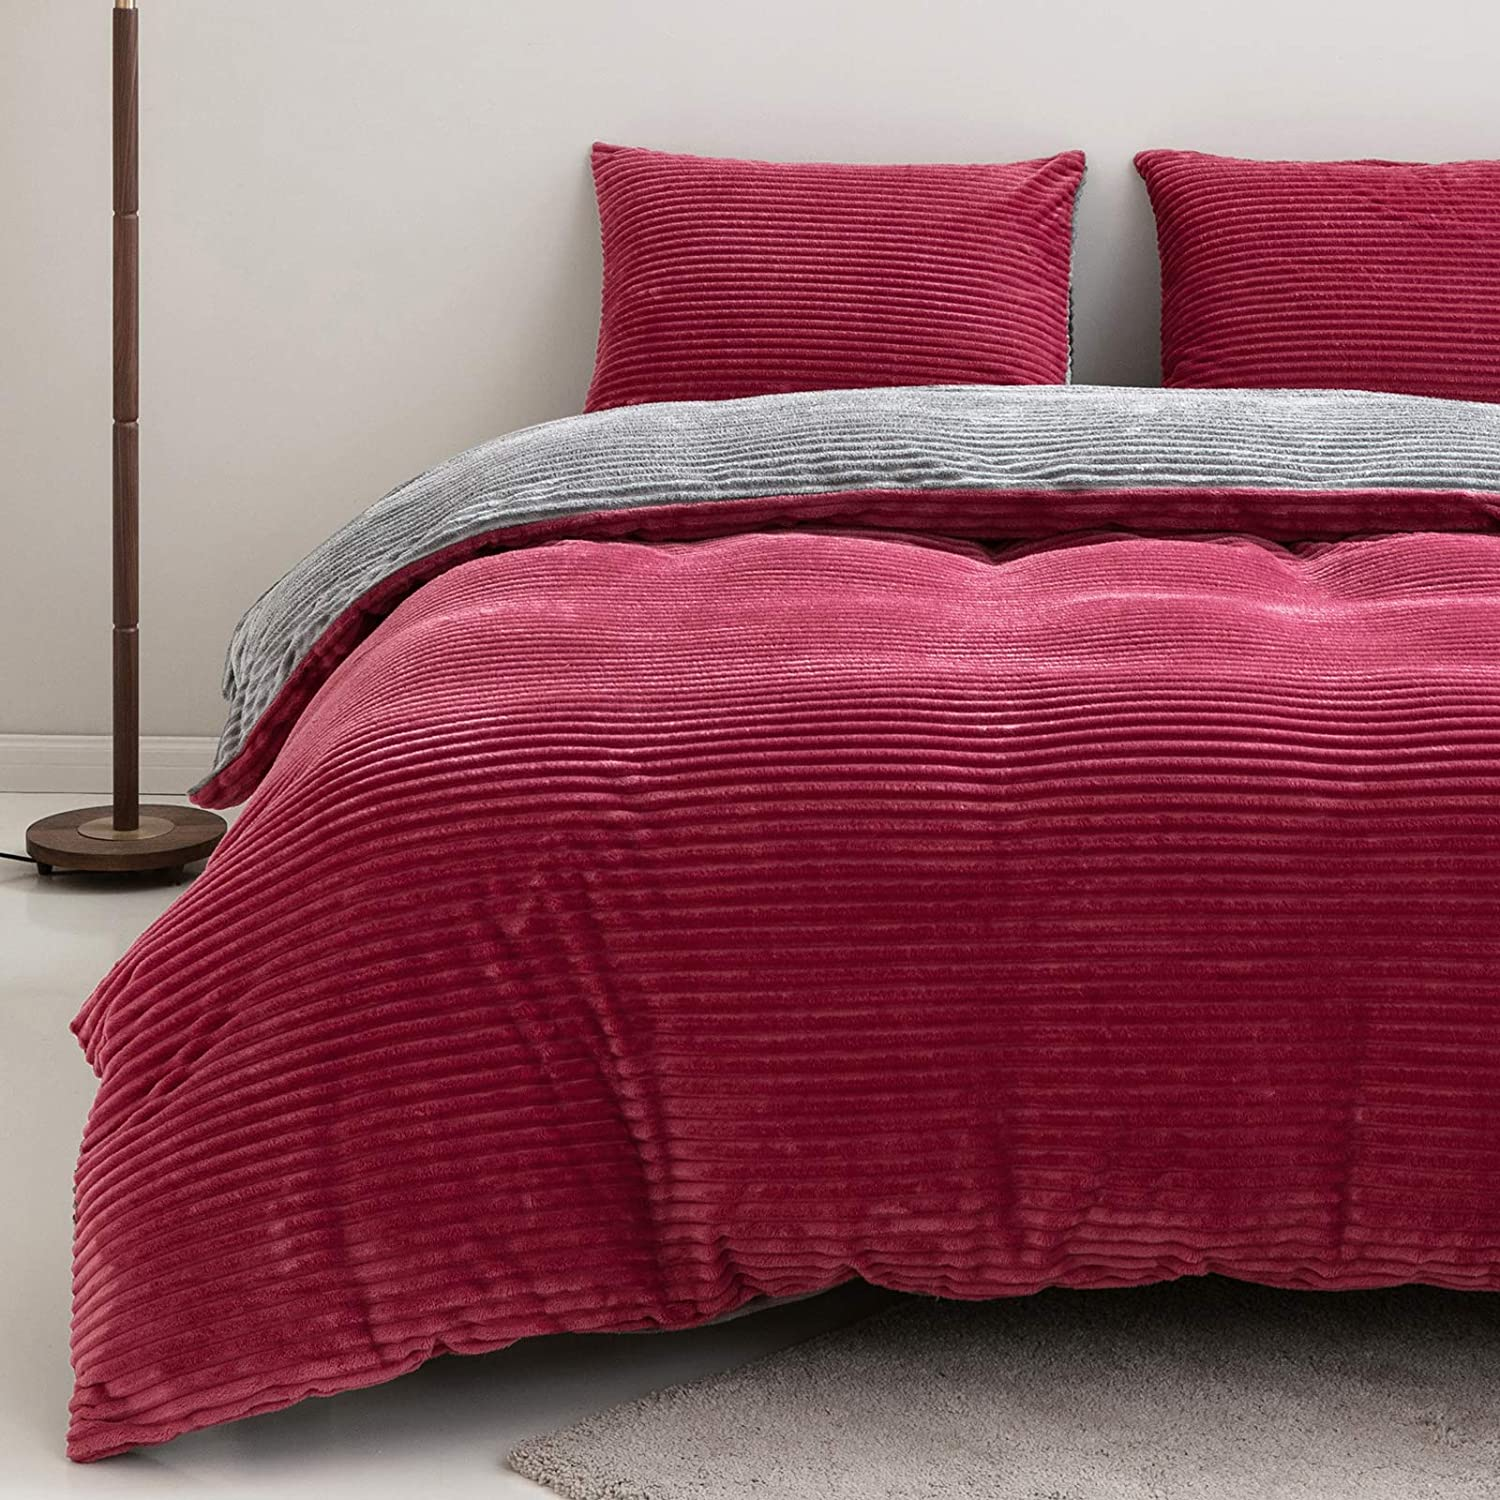 Luxury Duvet Pink Quilt Cover With Pillowcases VELVET Bedding Set Quilted 2020